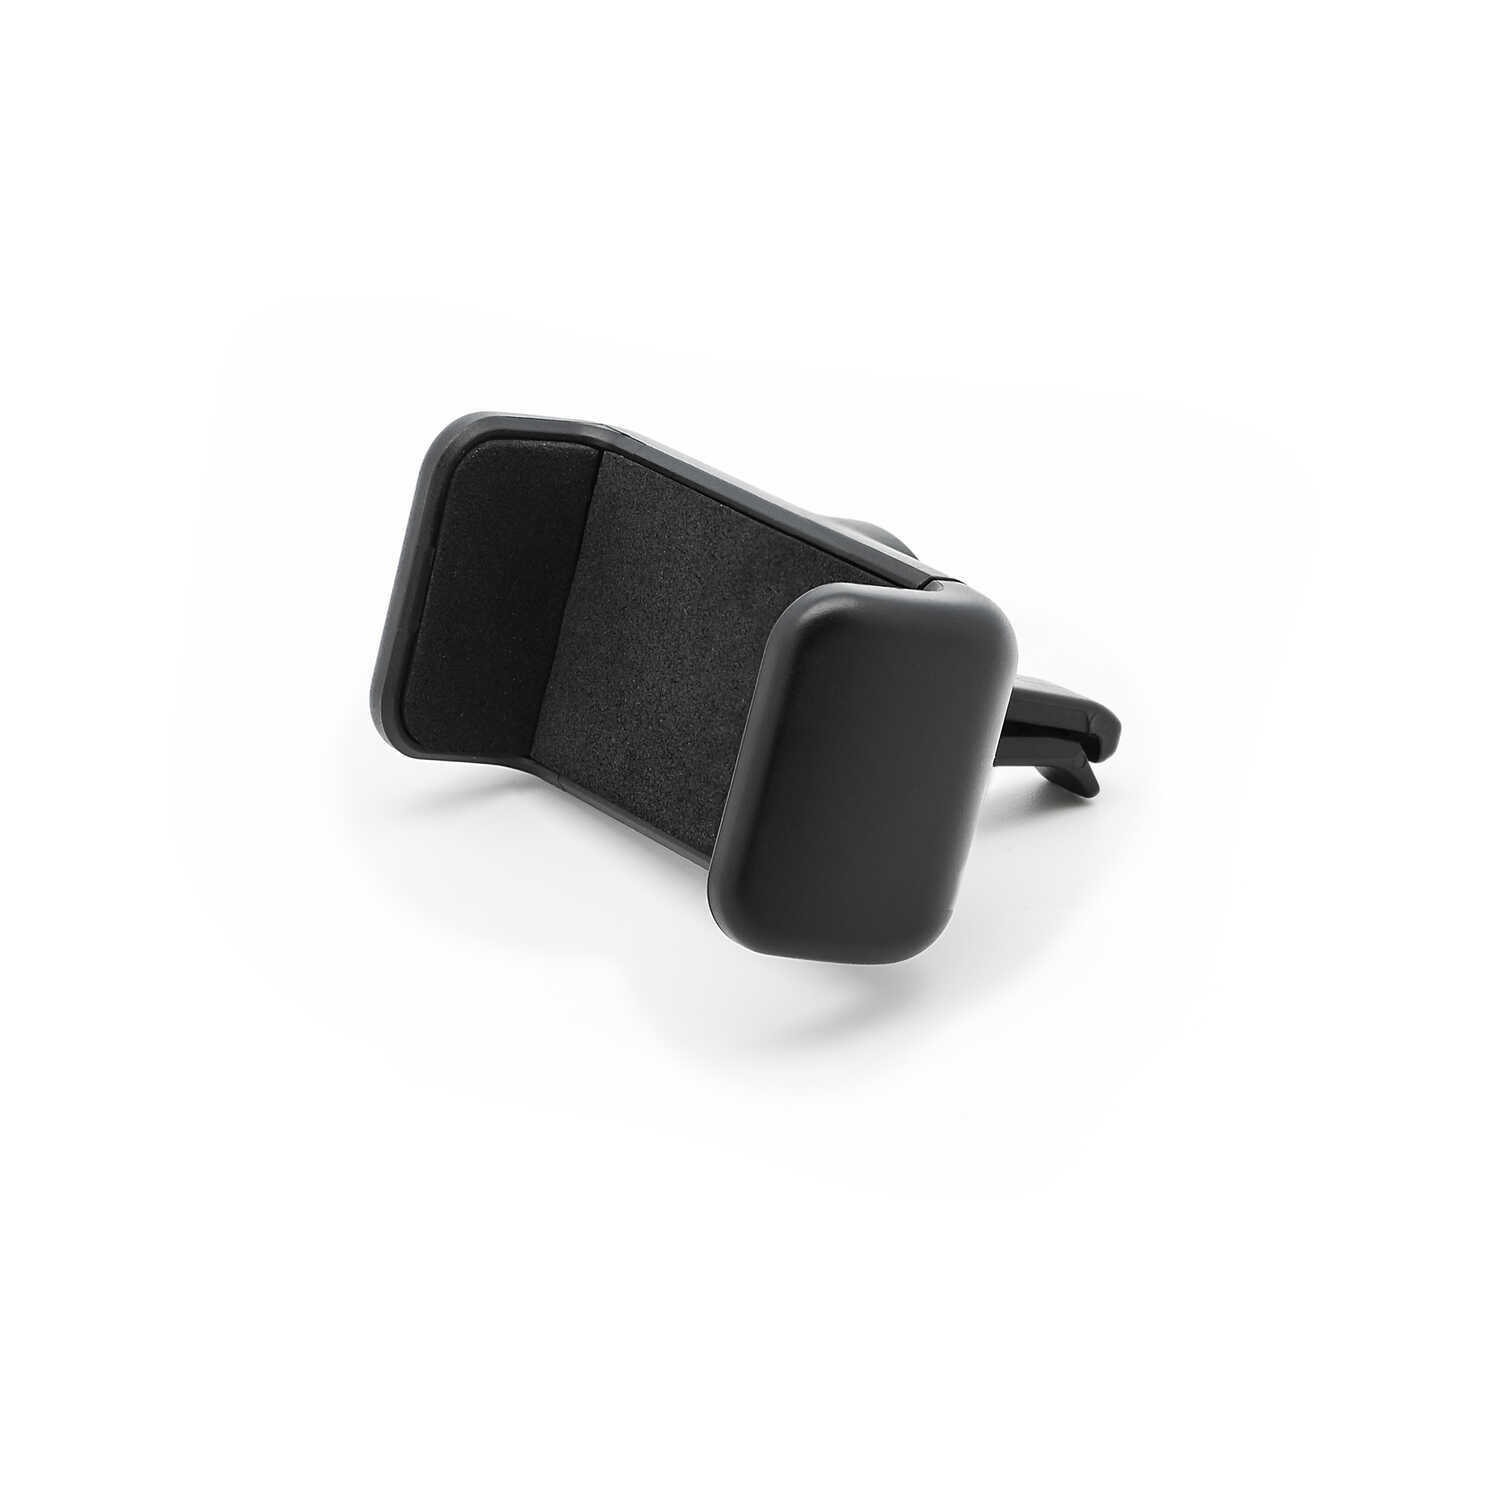 Bracketron  BT Basics SqueezeVent  Black  Cell Phone Car Vent Mount  For Universal